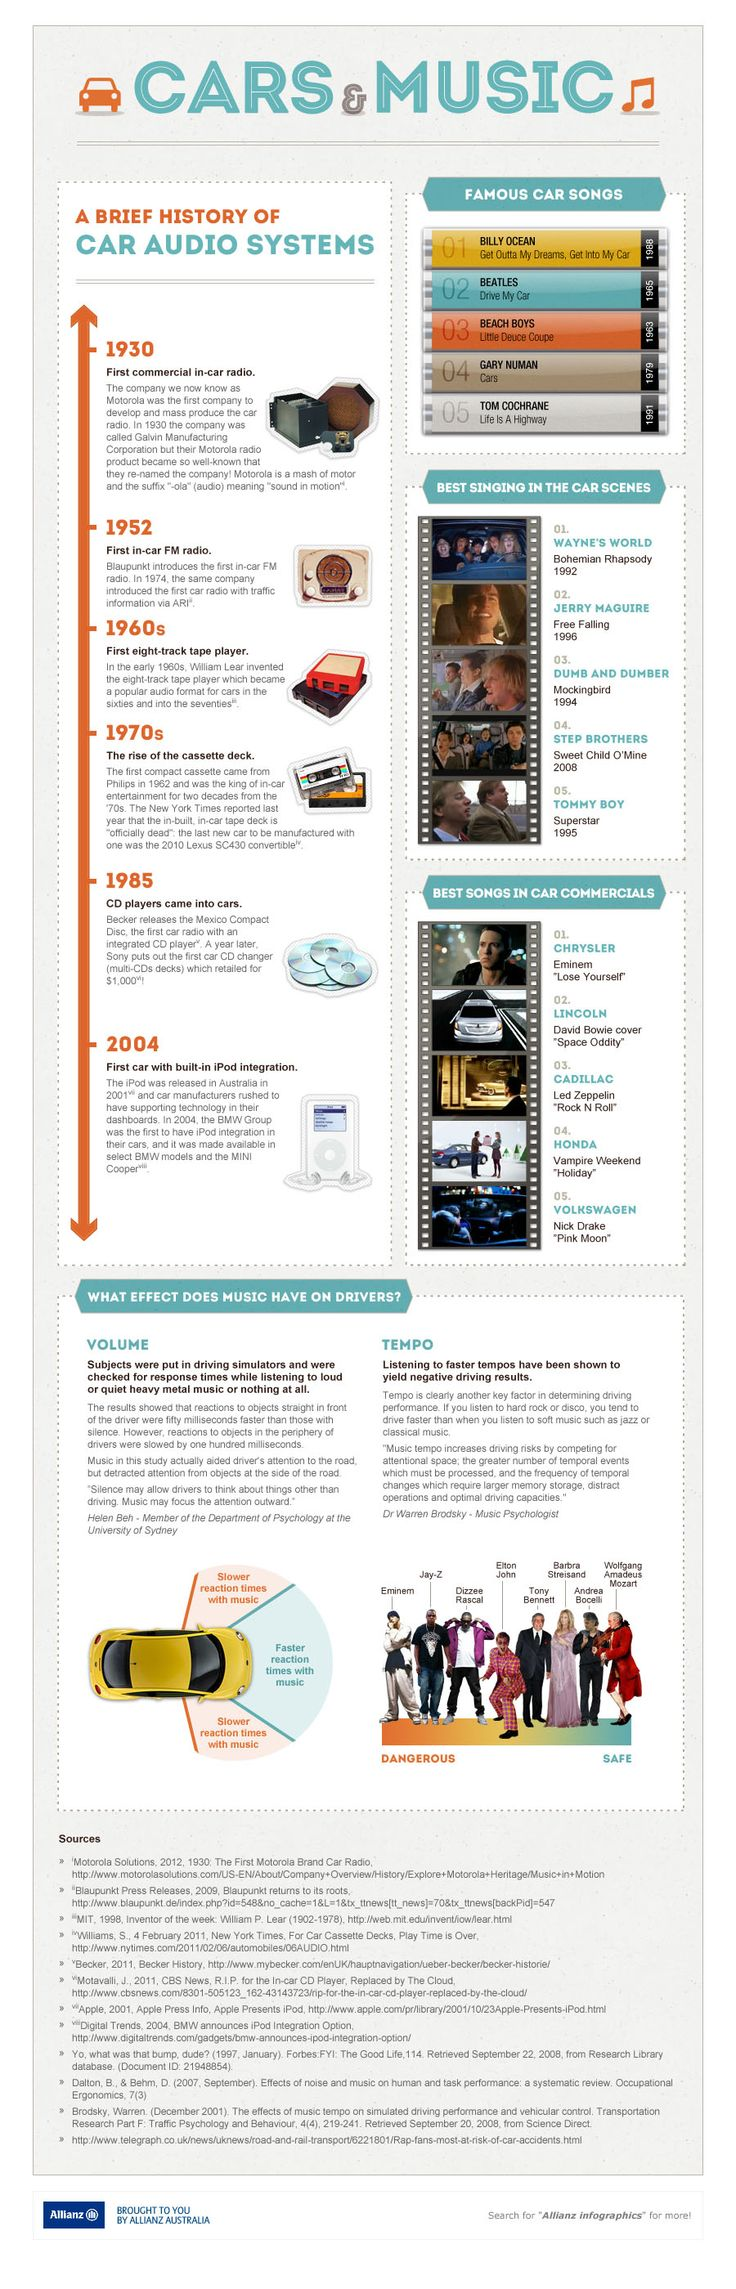 This infographic takes a look at top five classic car songs and the car ad songs that got stuck in our heads